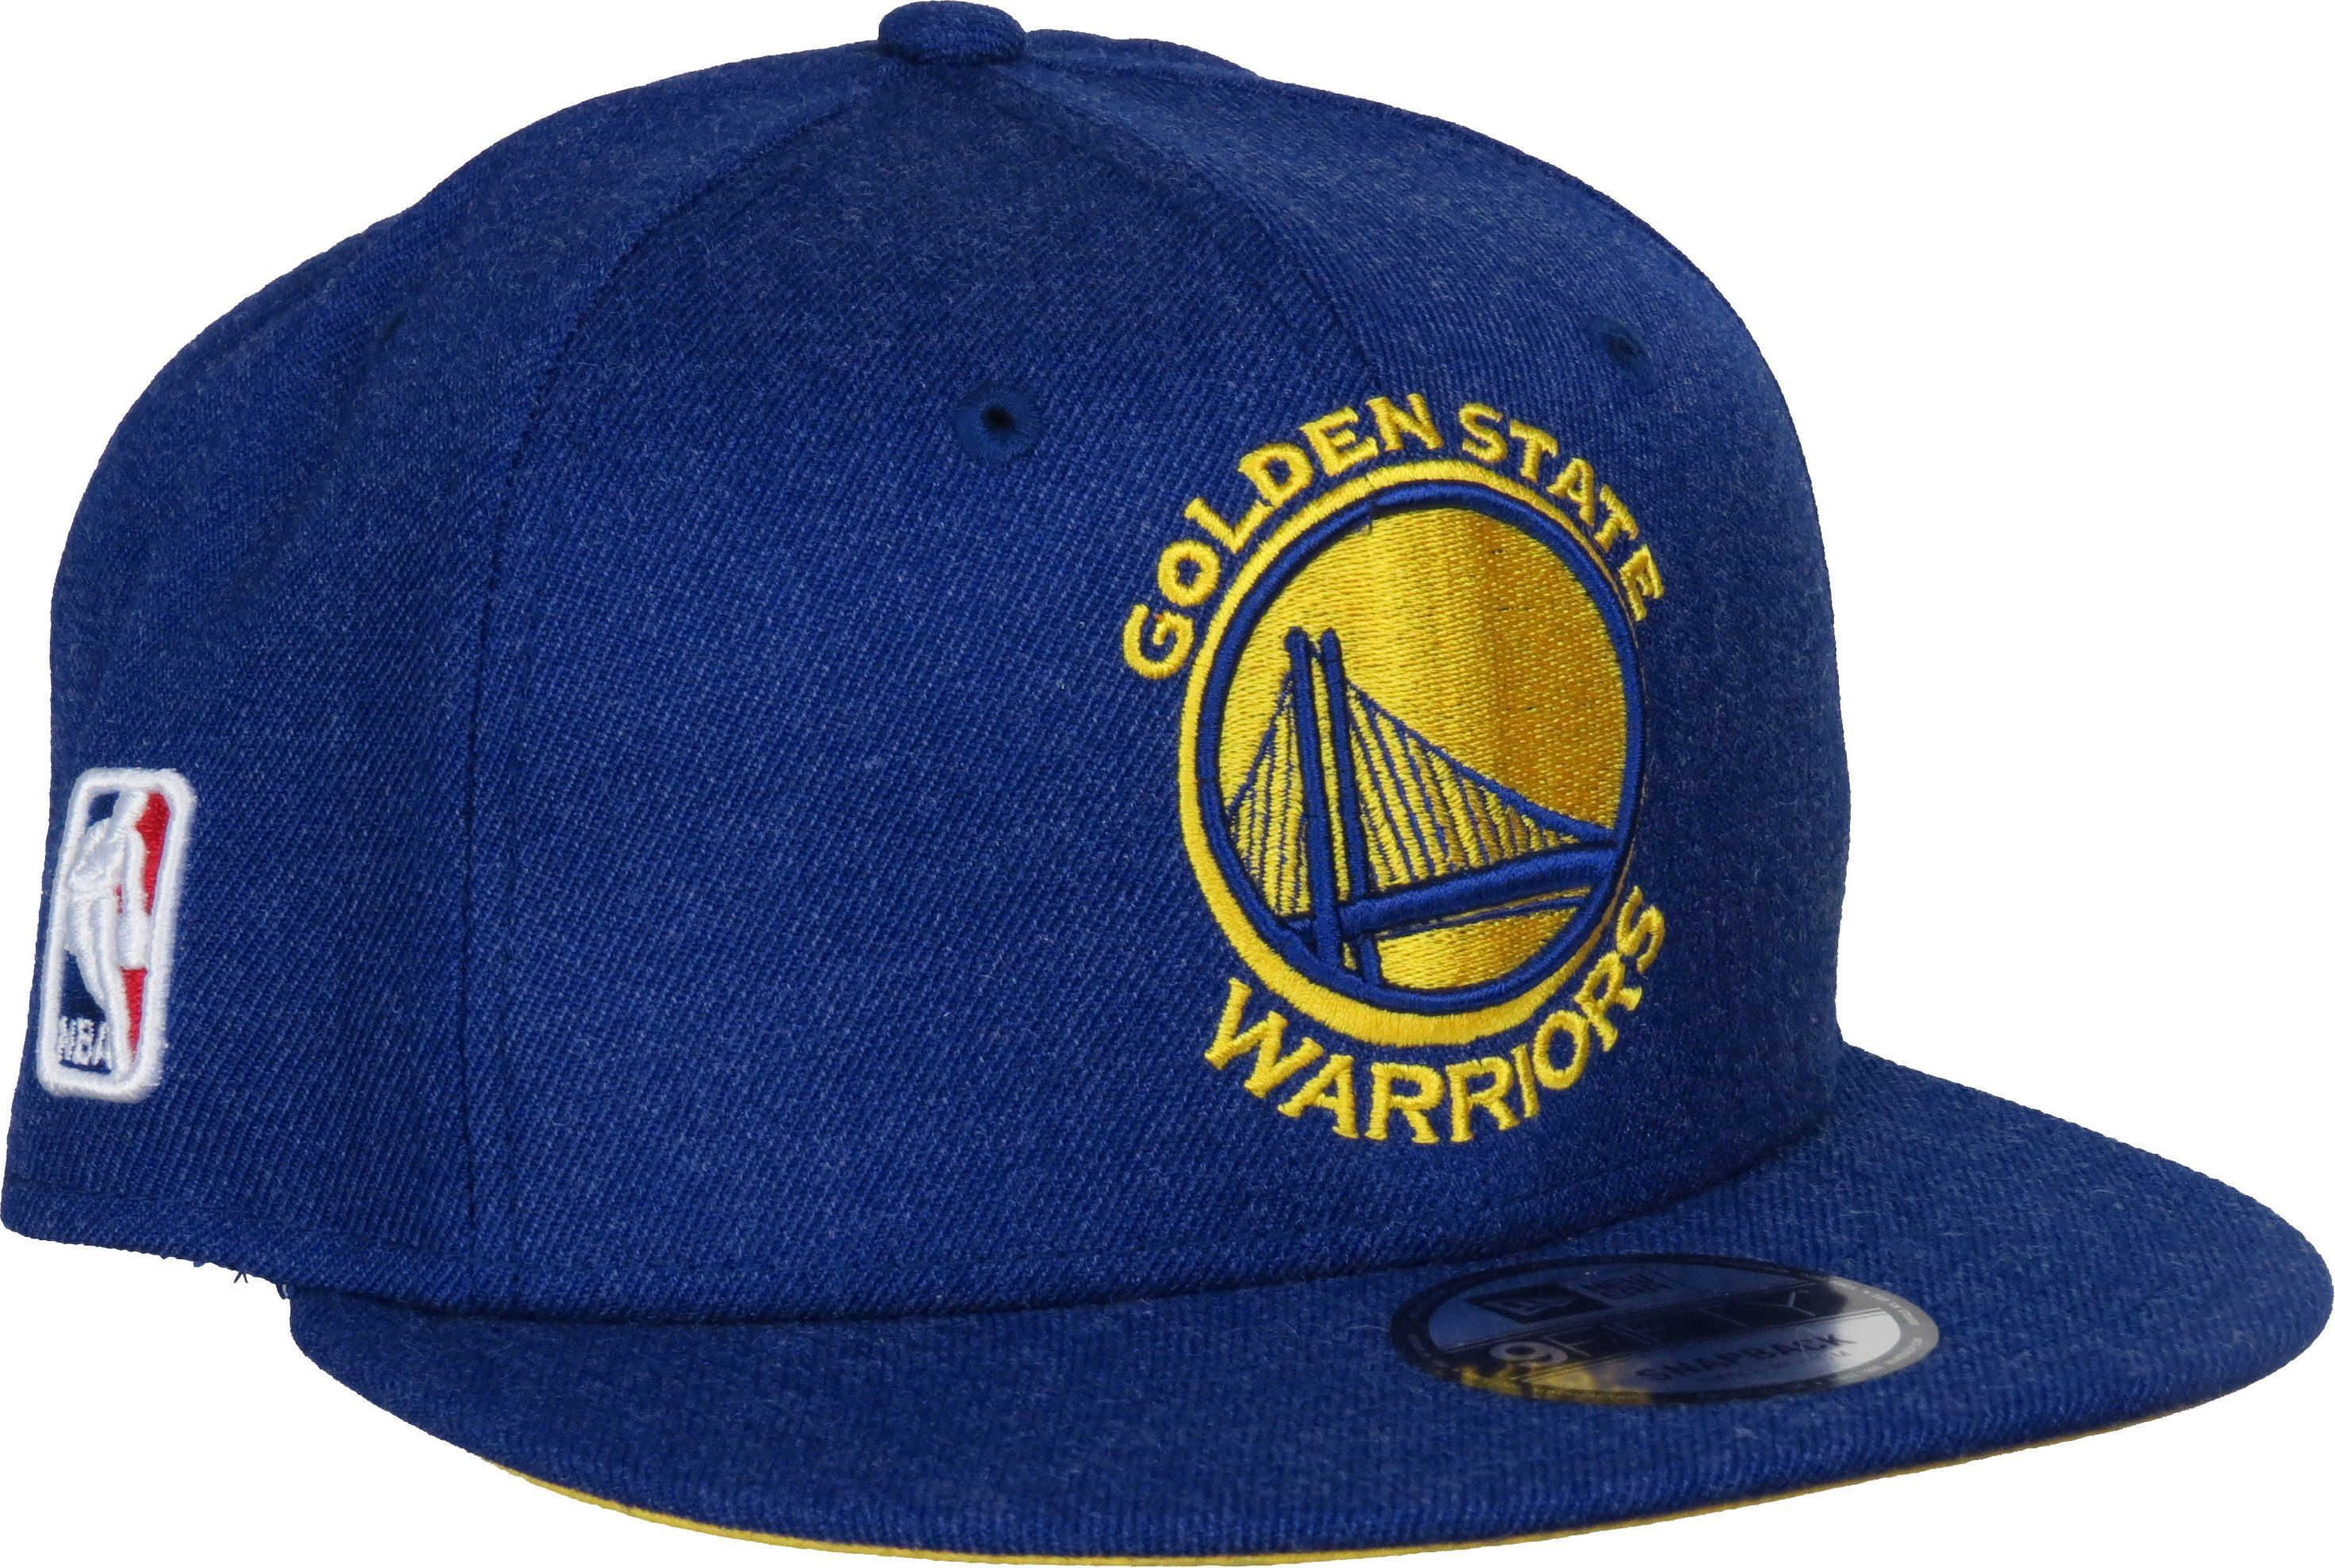 87ef2a744bf New Era 950 NBA Team Heather Snapback Cap. Blue Heather with the Golden  State Warriors